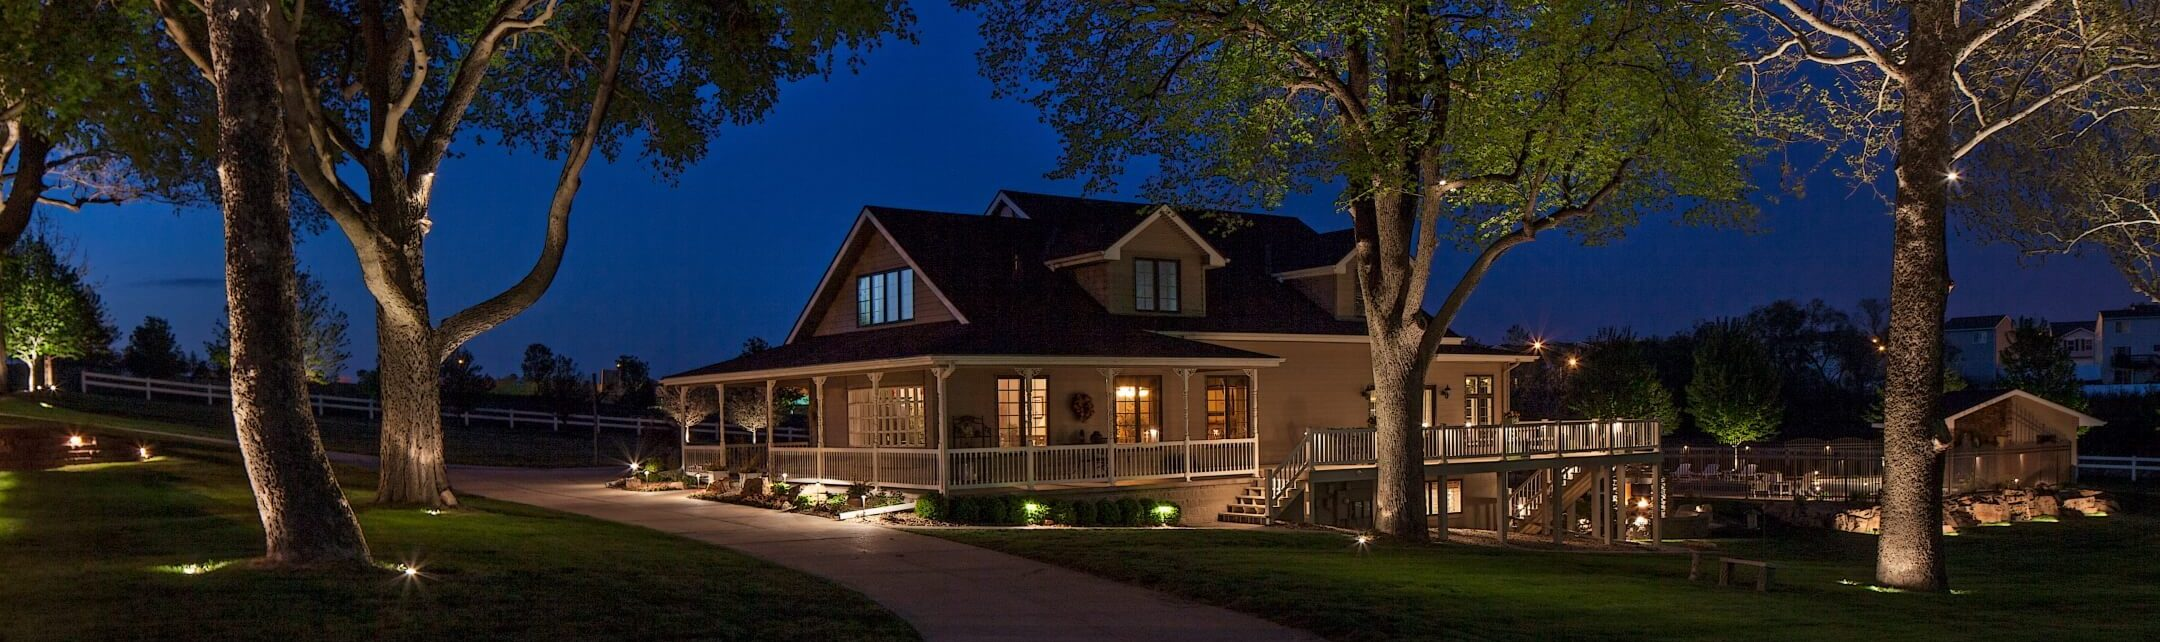 Professional Outdoor Lighting Services Omaha NE